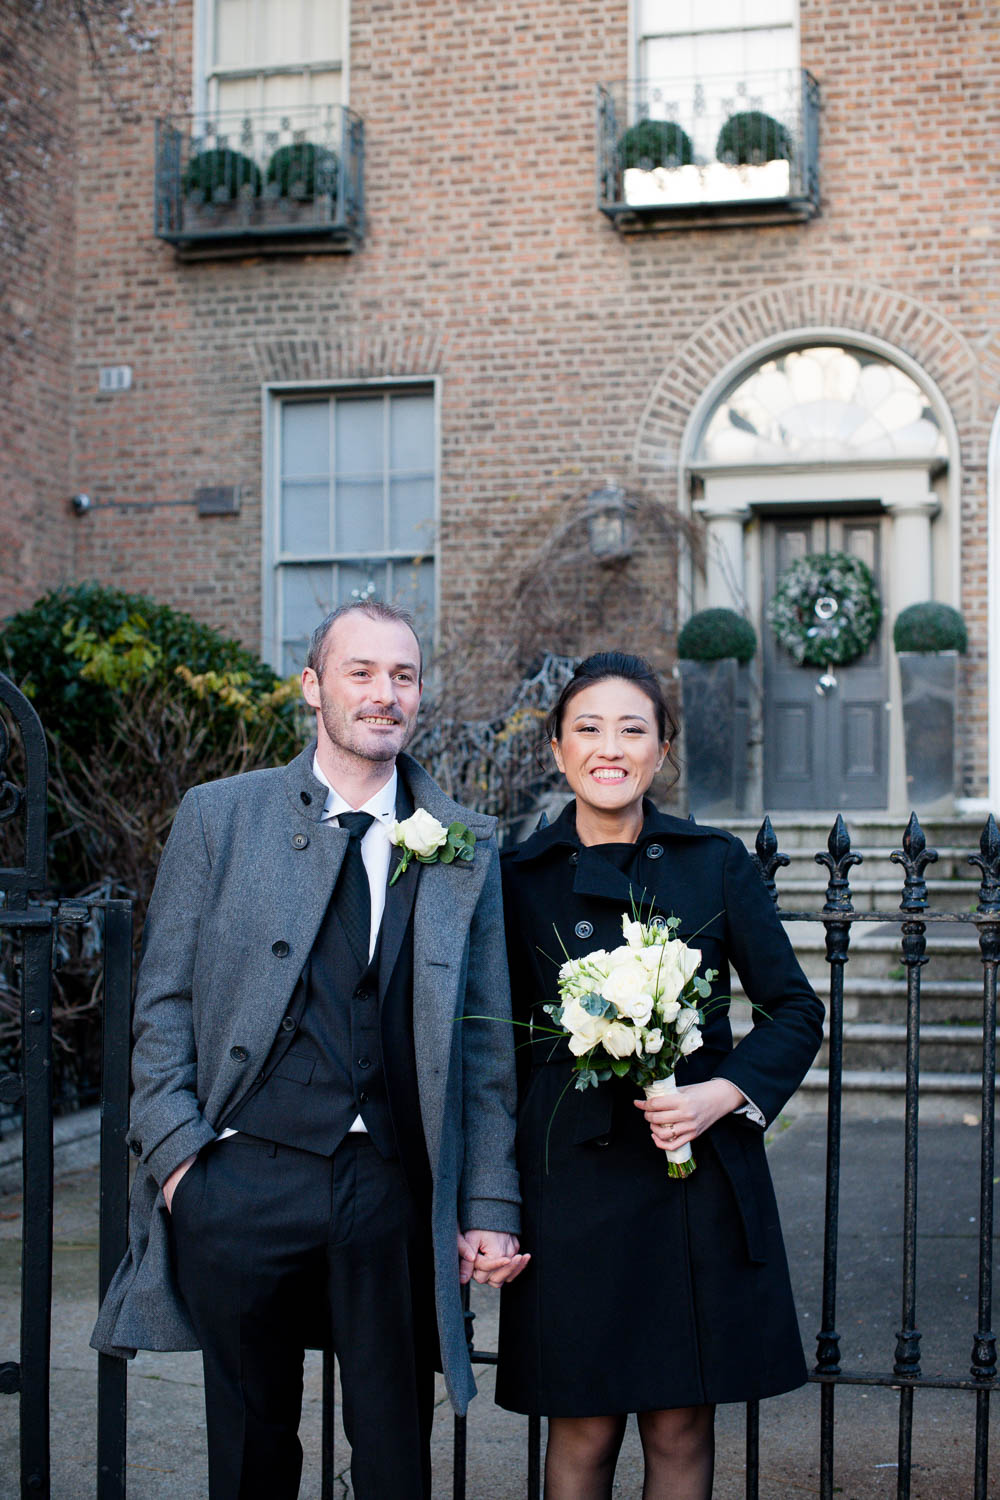 The bride and groom in a Dublin Registry Office Wedding Photo